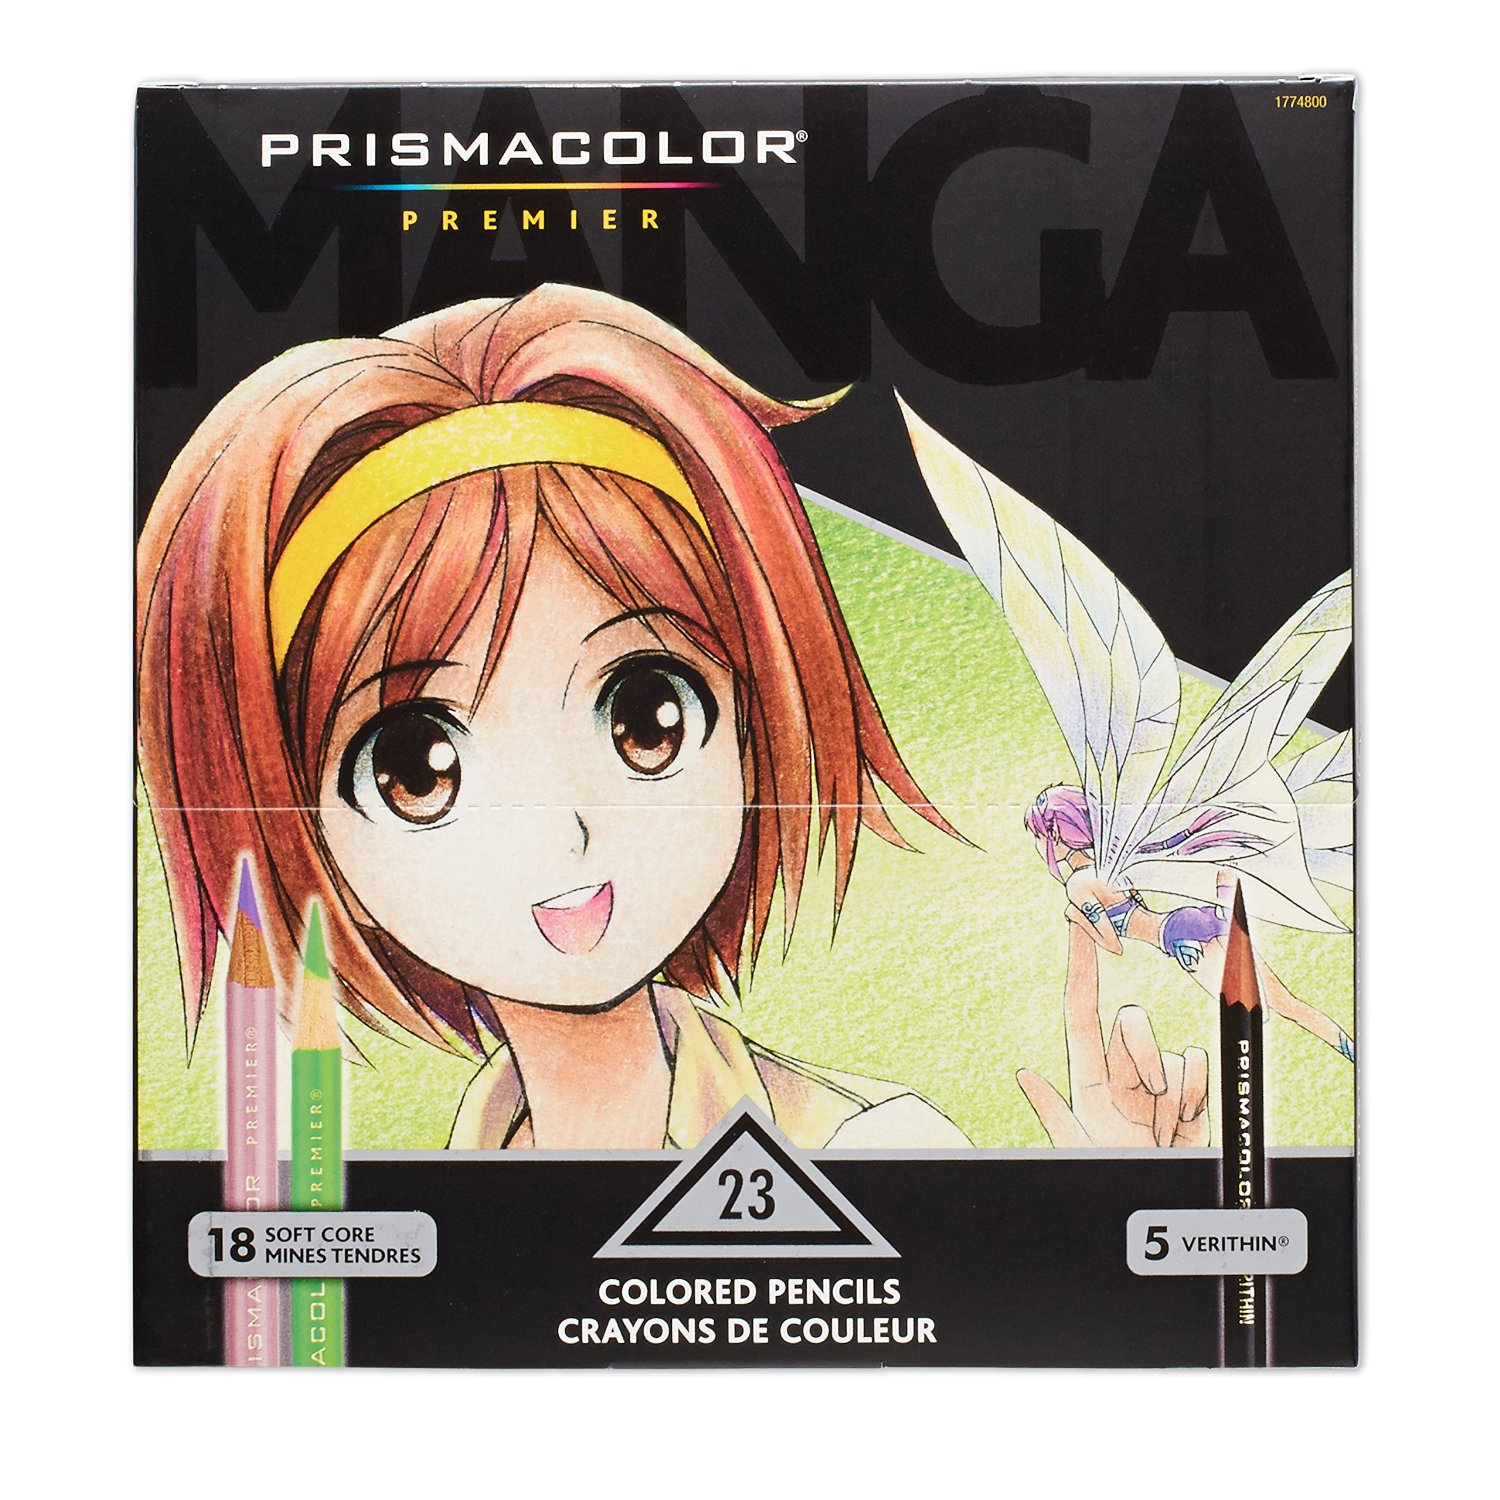 Anime and manga drawing kits for teens and adults